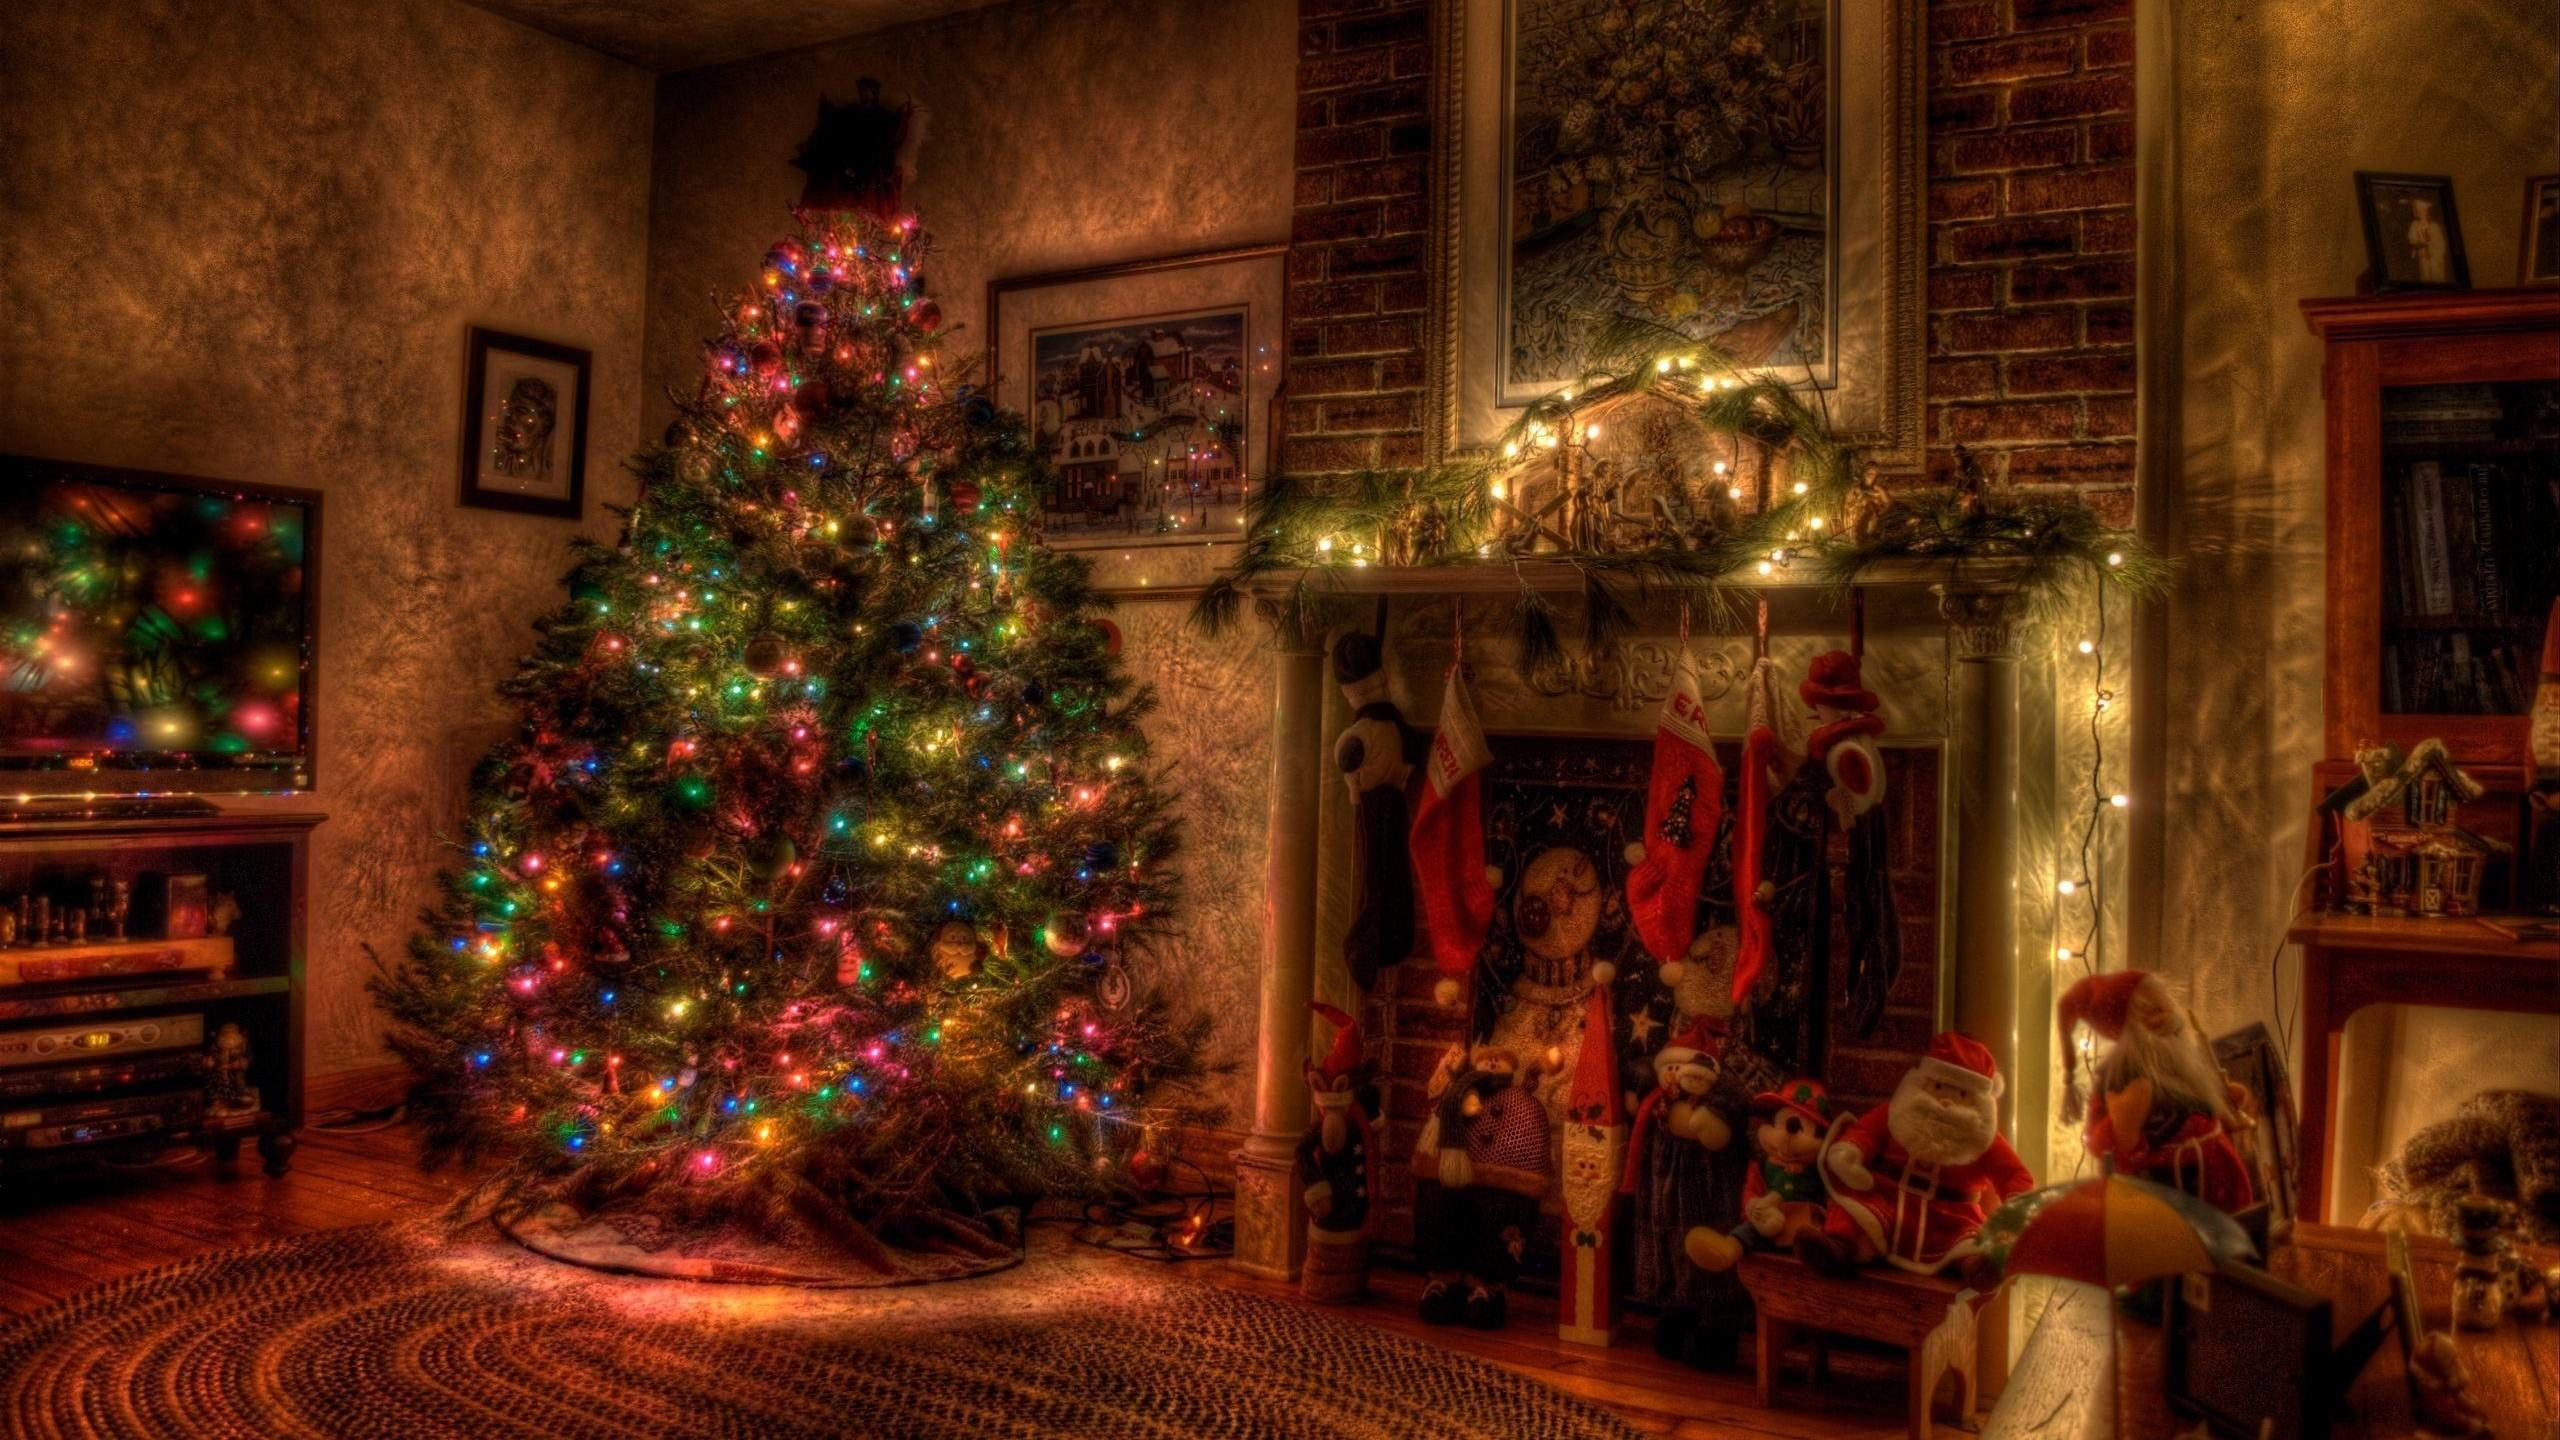 Christmas Fireplace Wallpaper 57 images 2560x1440